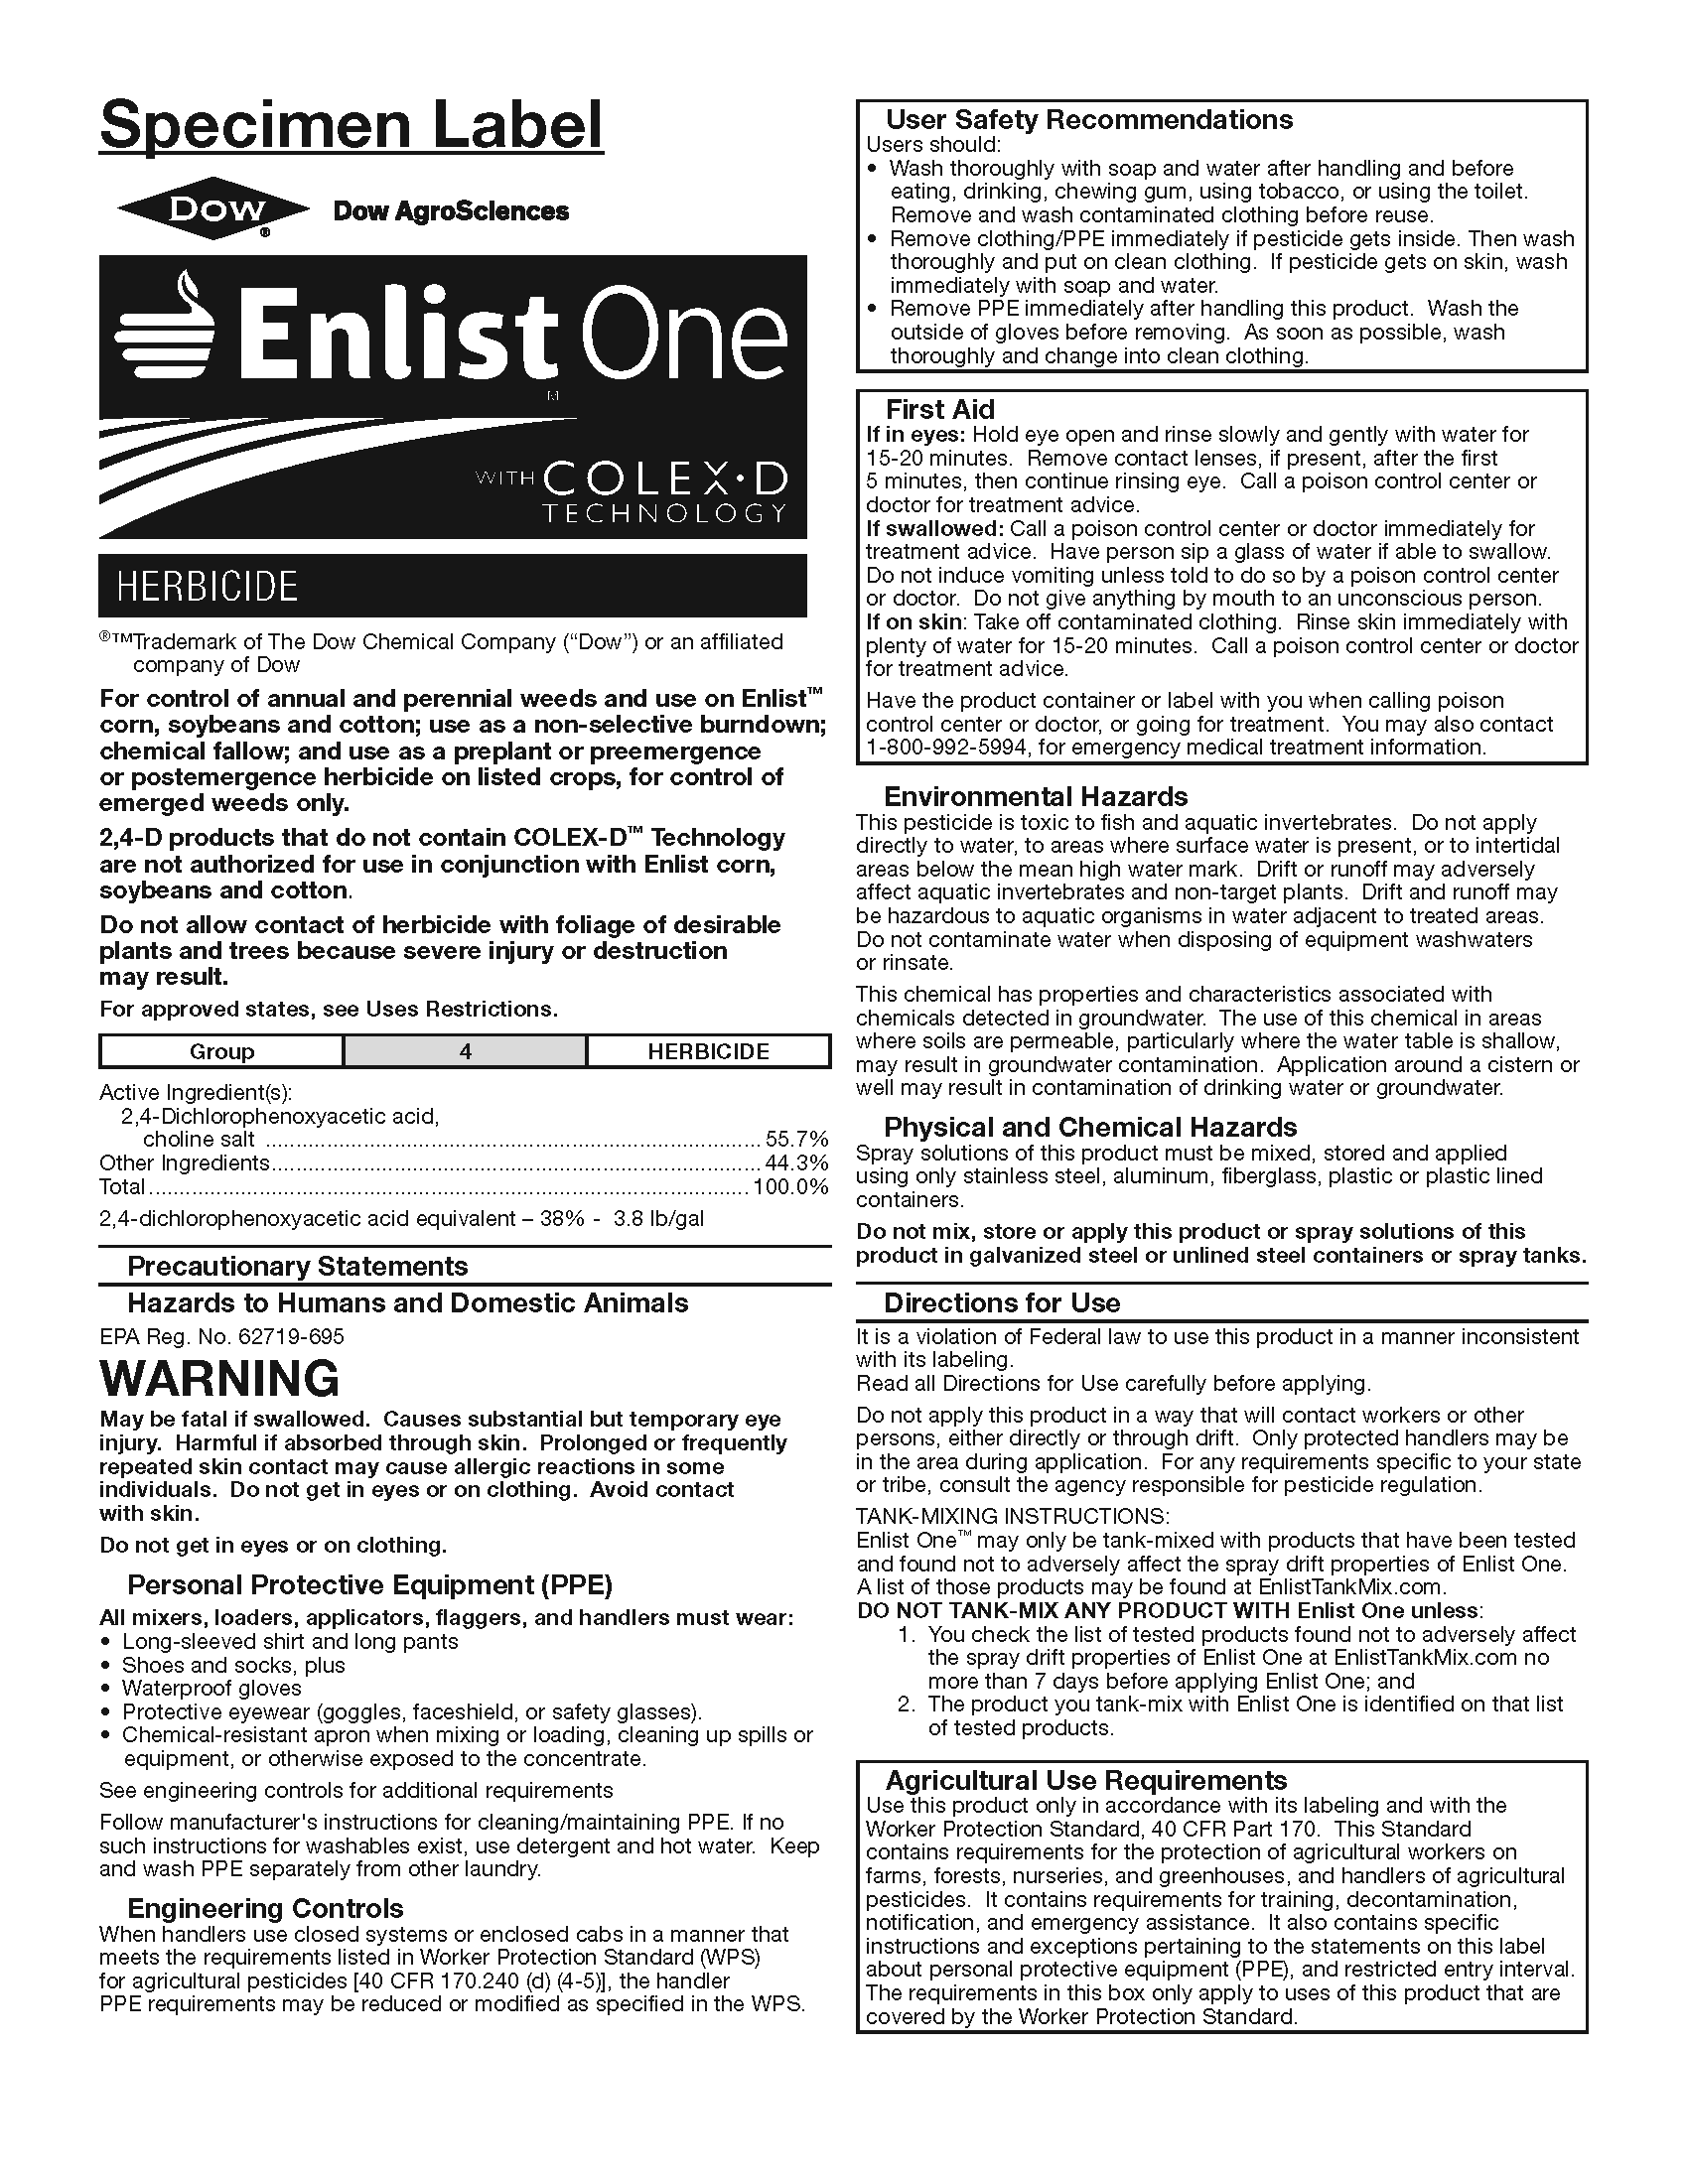 Enlist-One-Herbicide-Specimen-Label